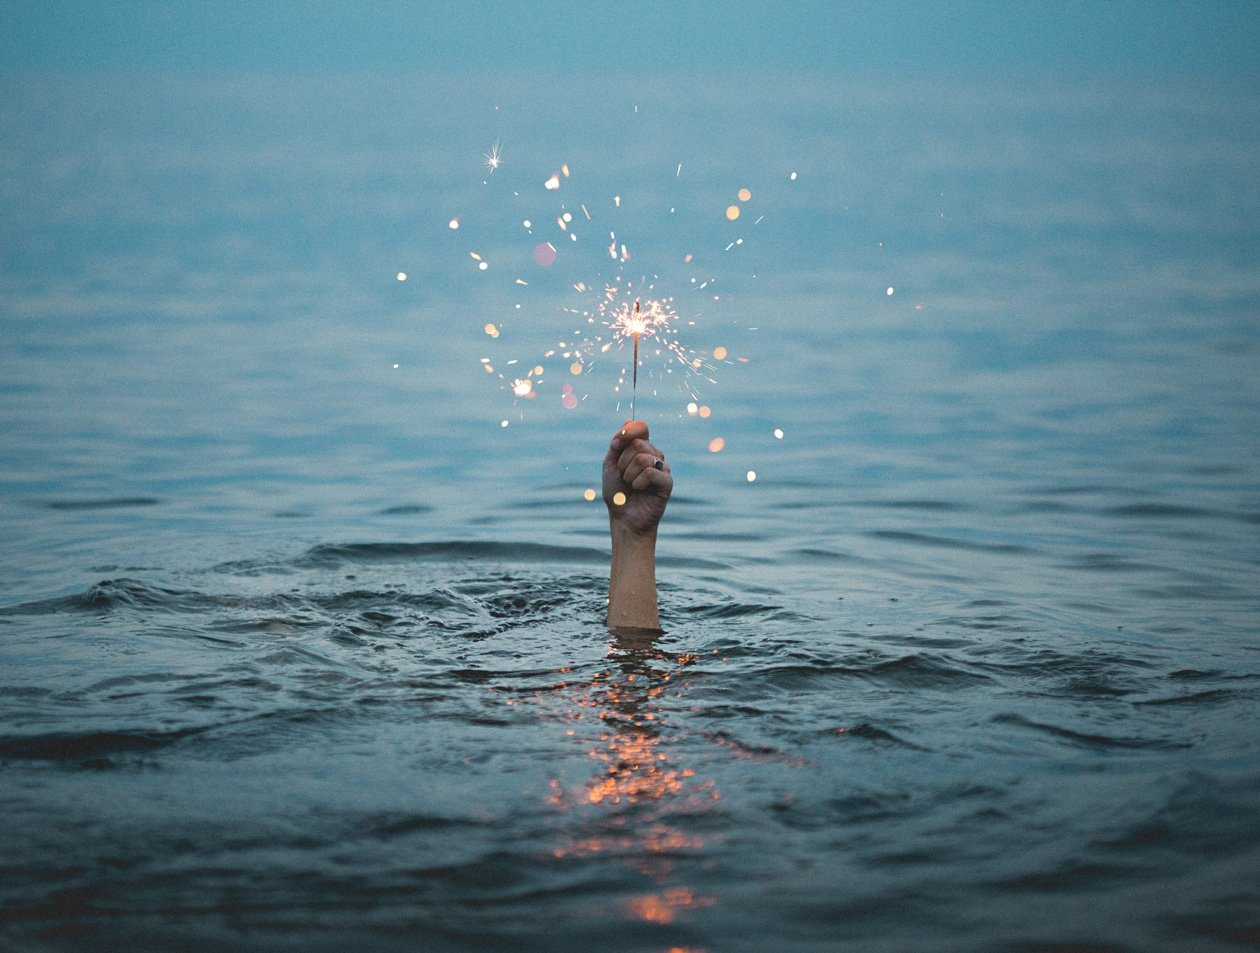 person submerged on body of water holding sparkler - geothermal heat